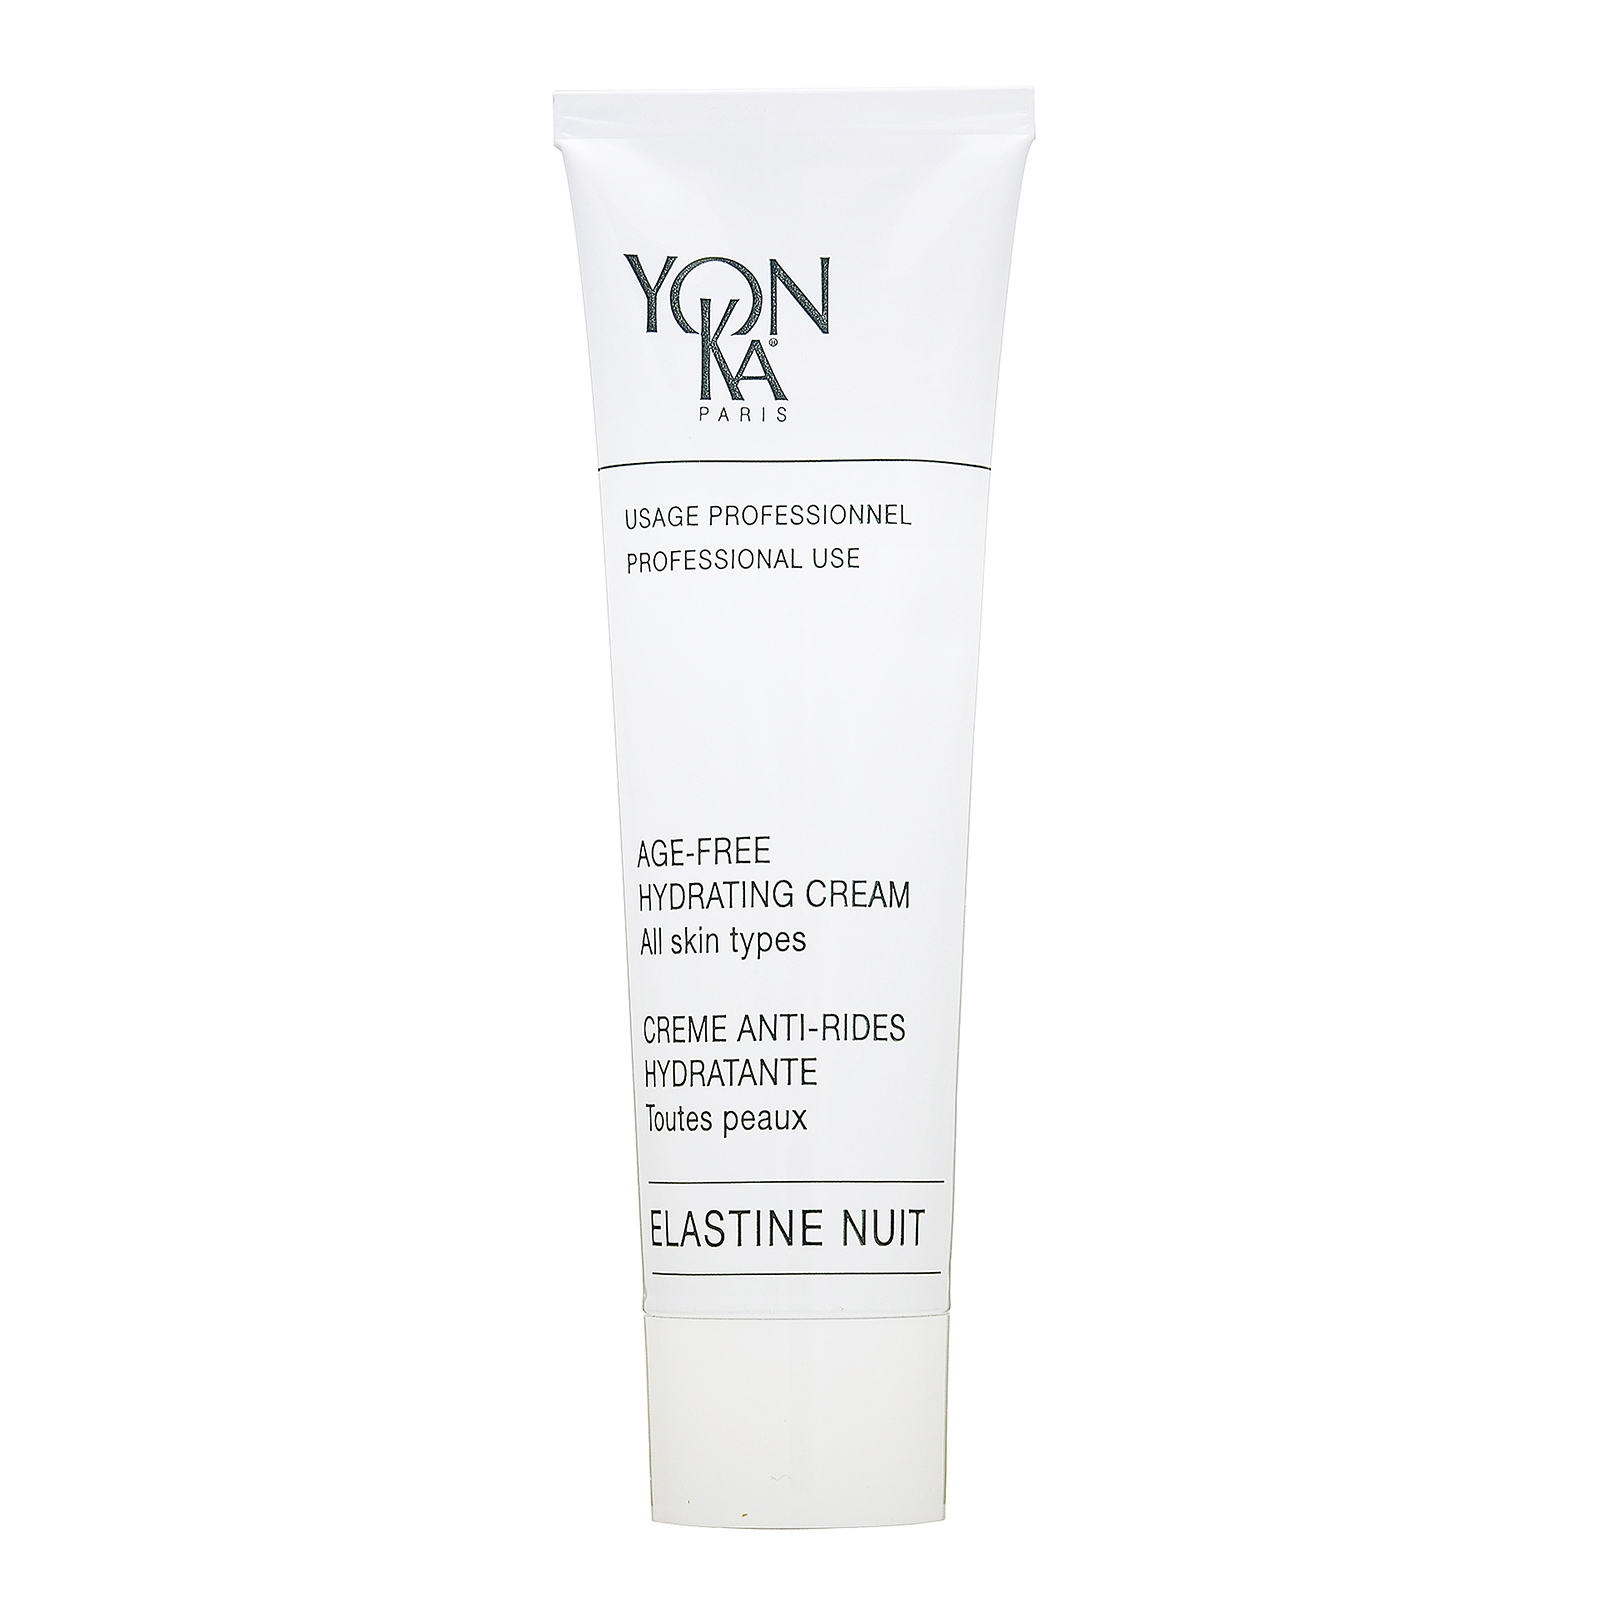 YON-KA Professional Elastine Nuit Protective Age-Free Hydrating Cream (All Skin Types) 3.52oz, 100ml